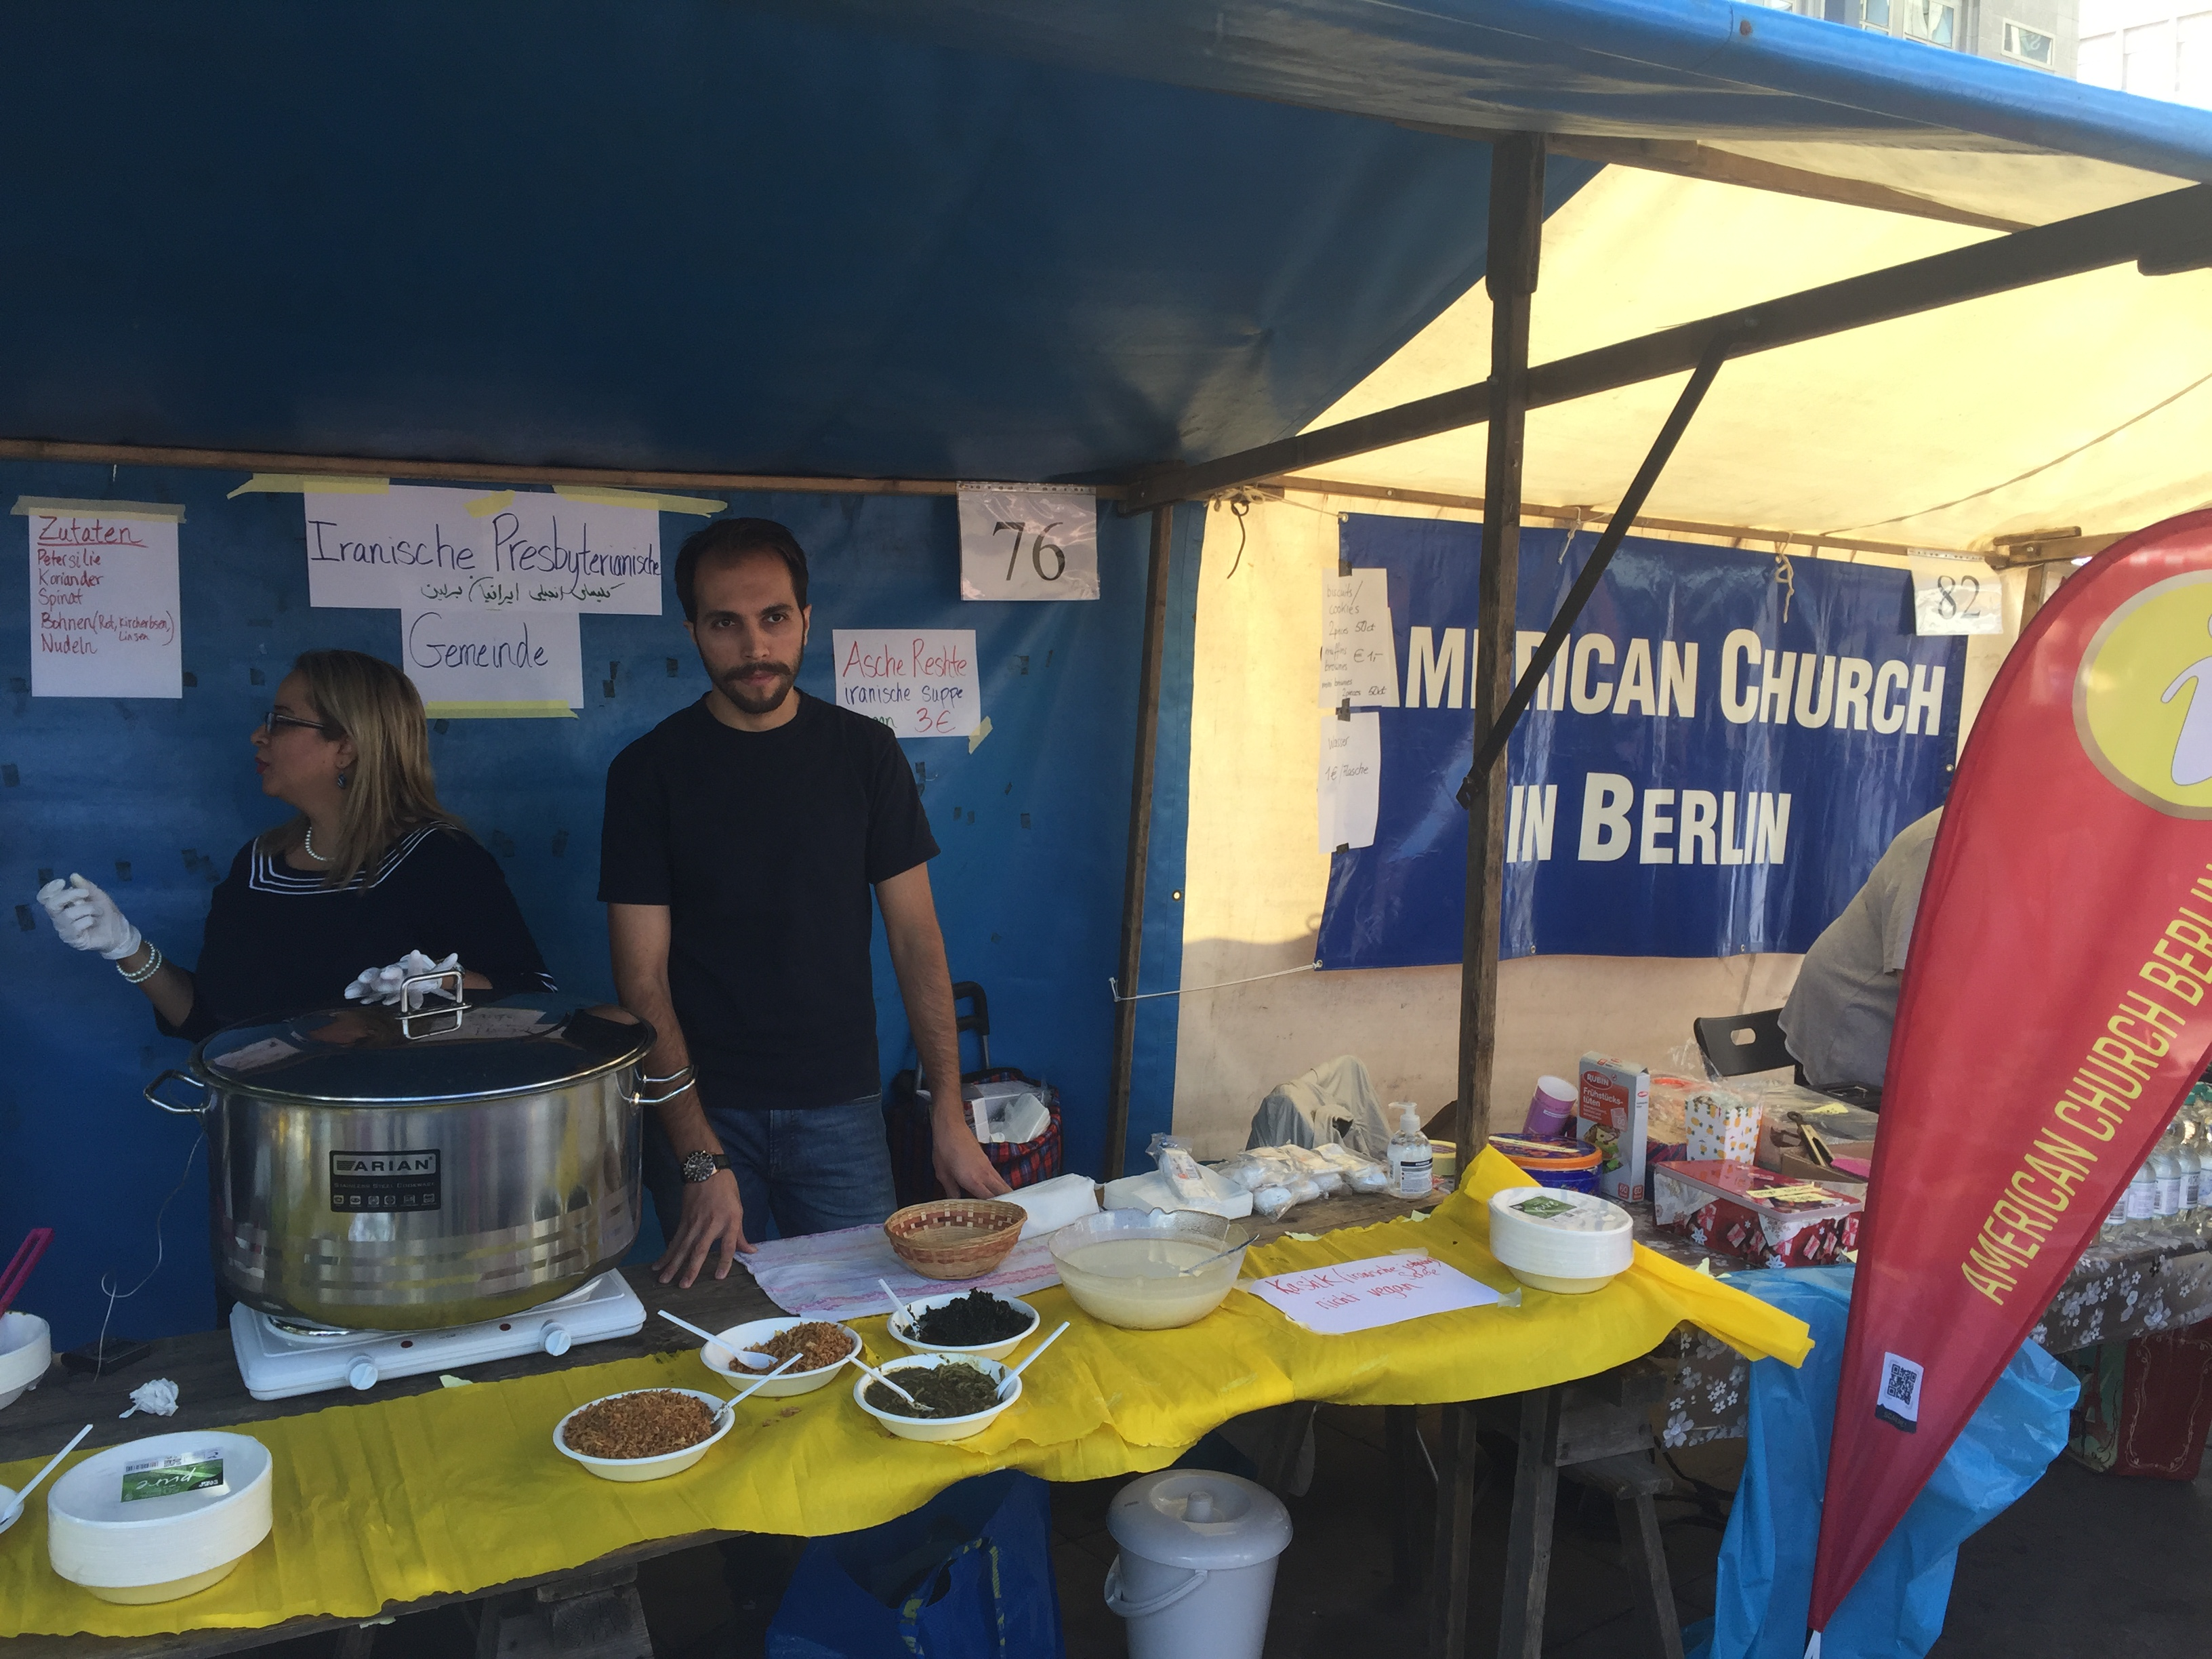 The American Church and the Iranian Presbyterian Church sharing a stand at the Fest der Kirchen.